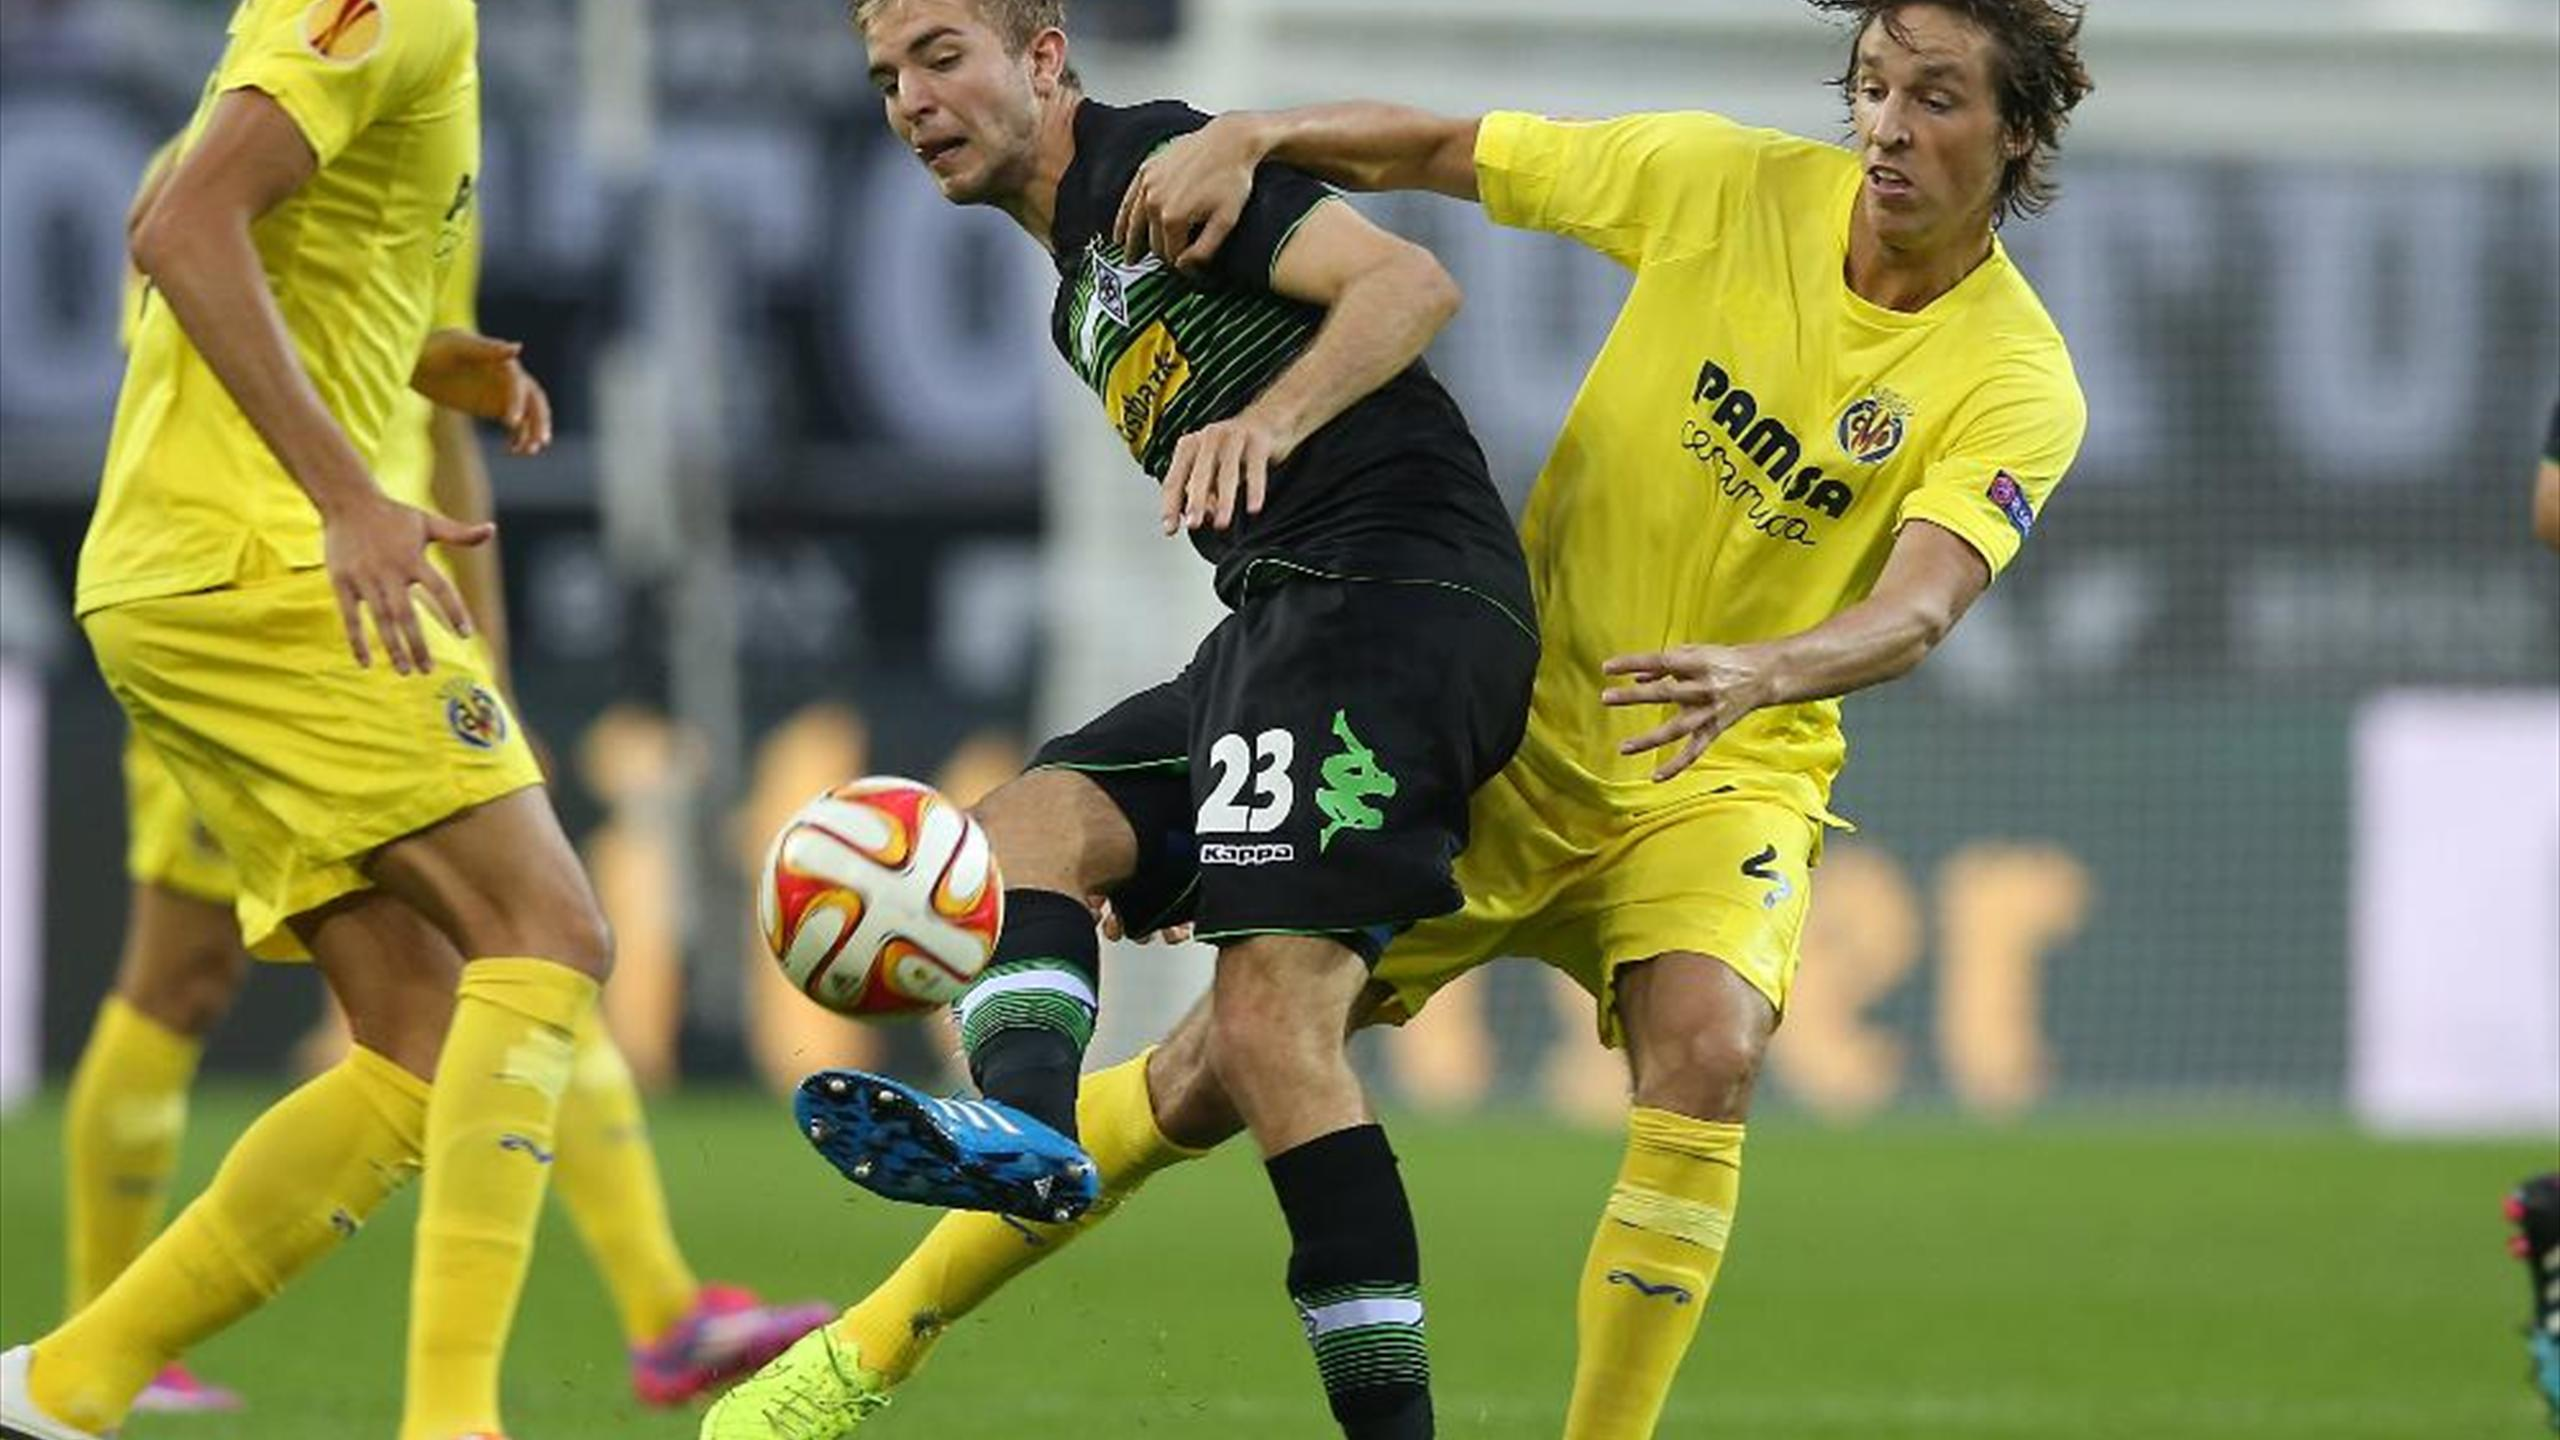 Video: Borussia M gladbach vs Villarreal